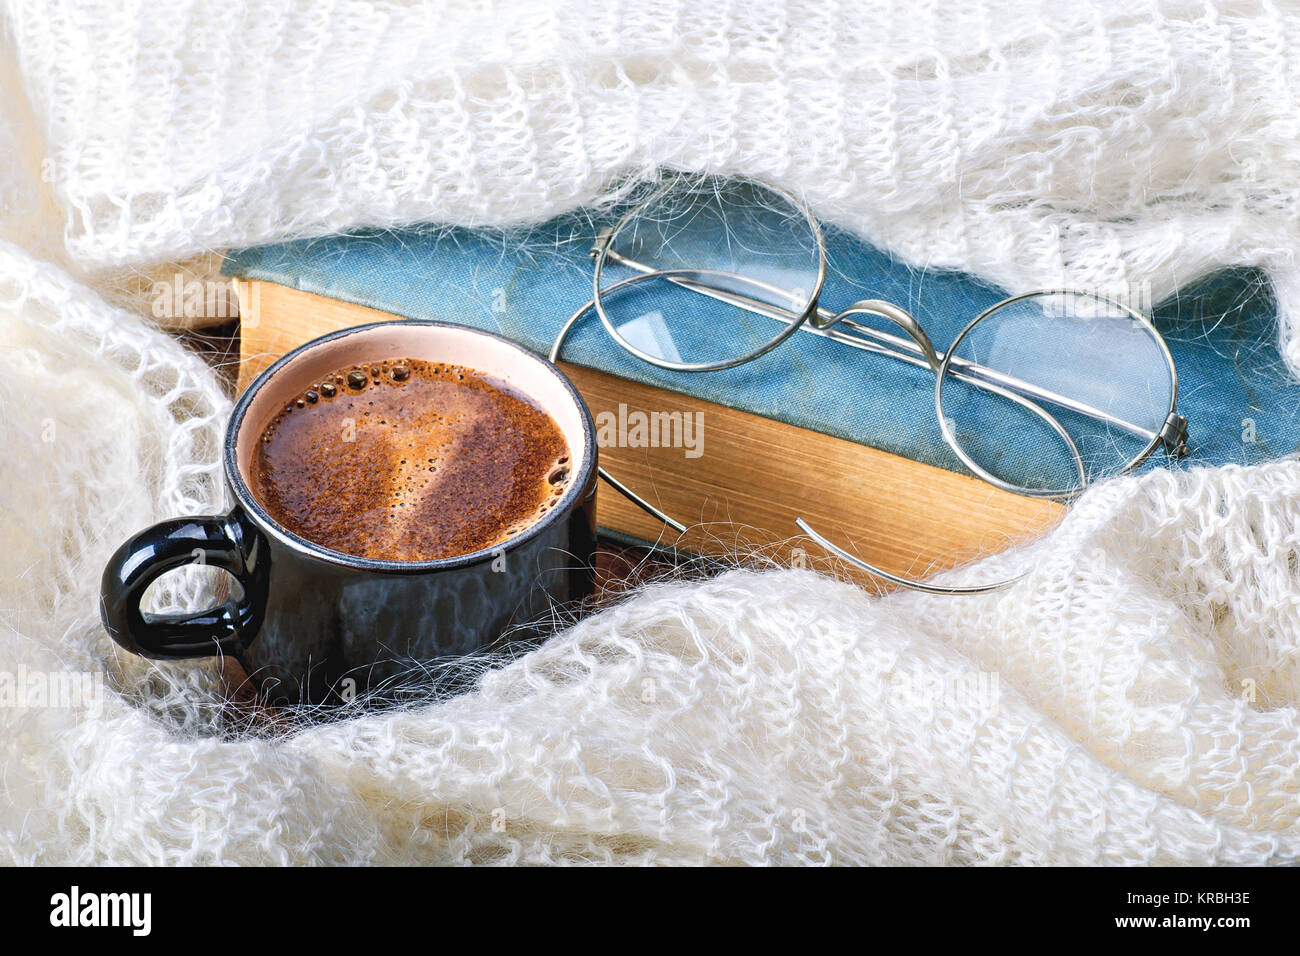 A Cup Of Coffee Wrapped In Scarf Sweater Or Warm Plaid